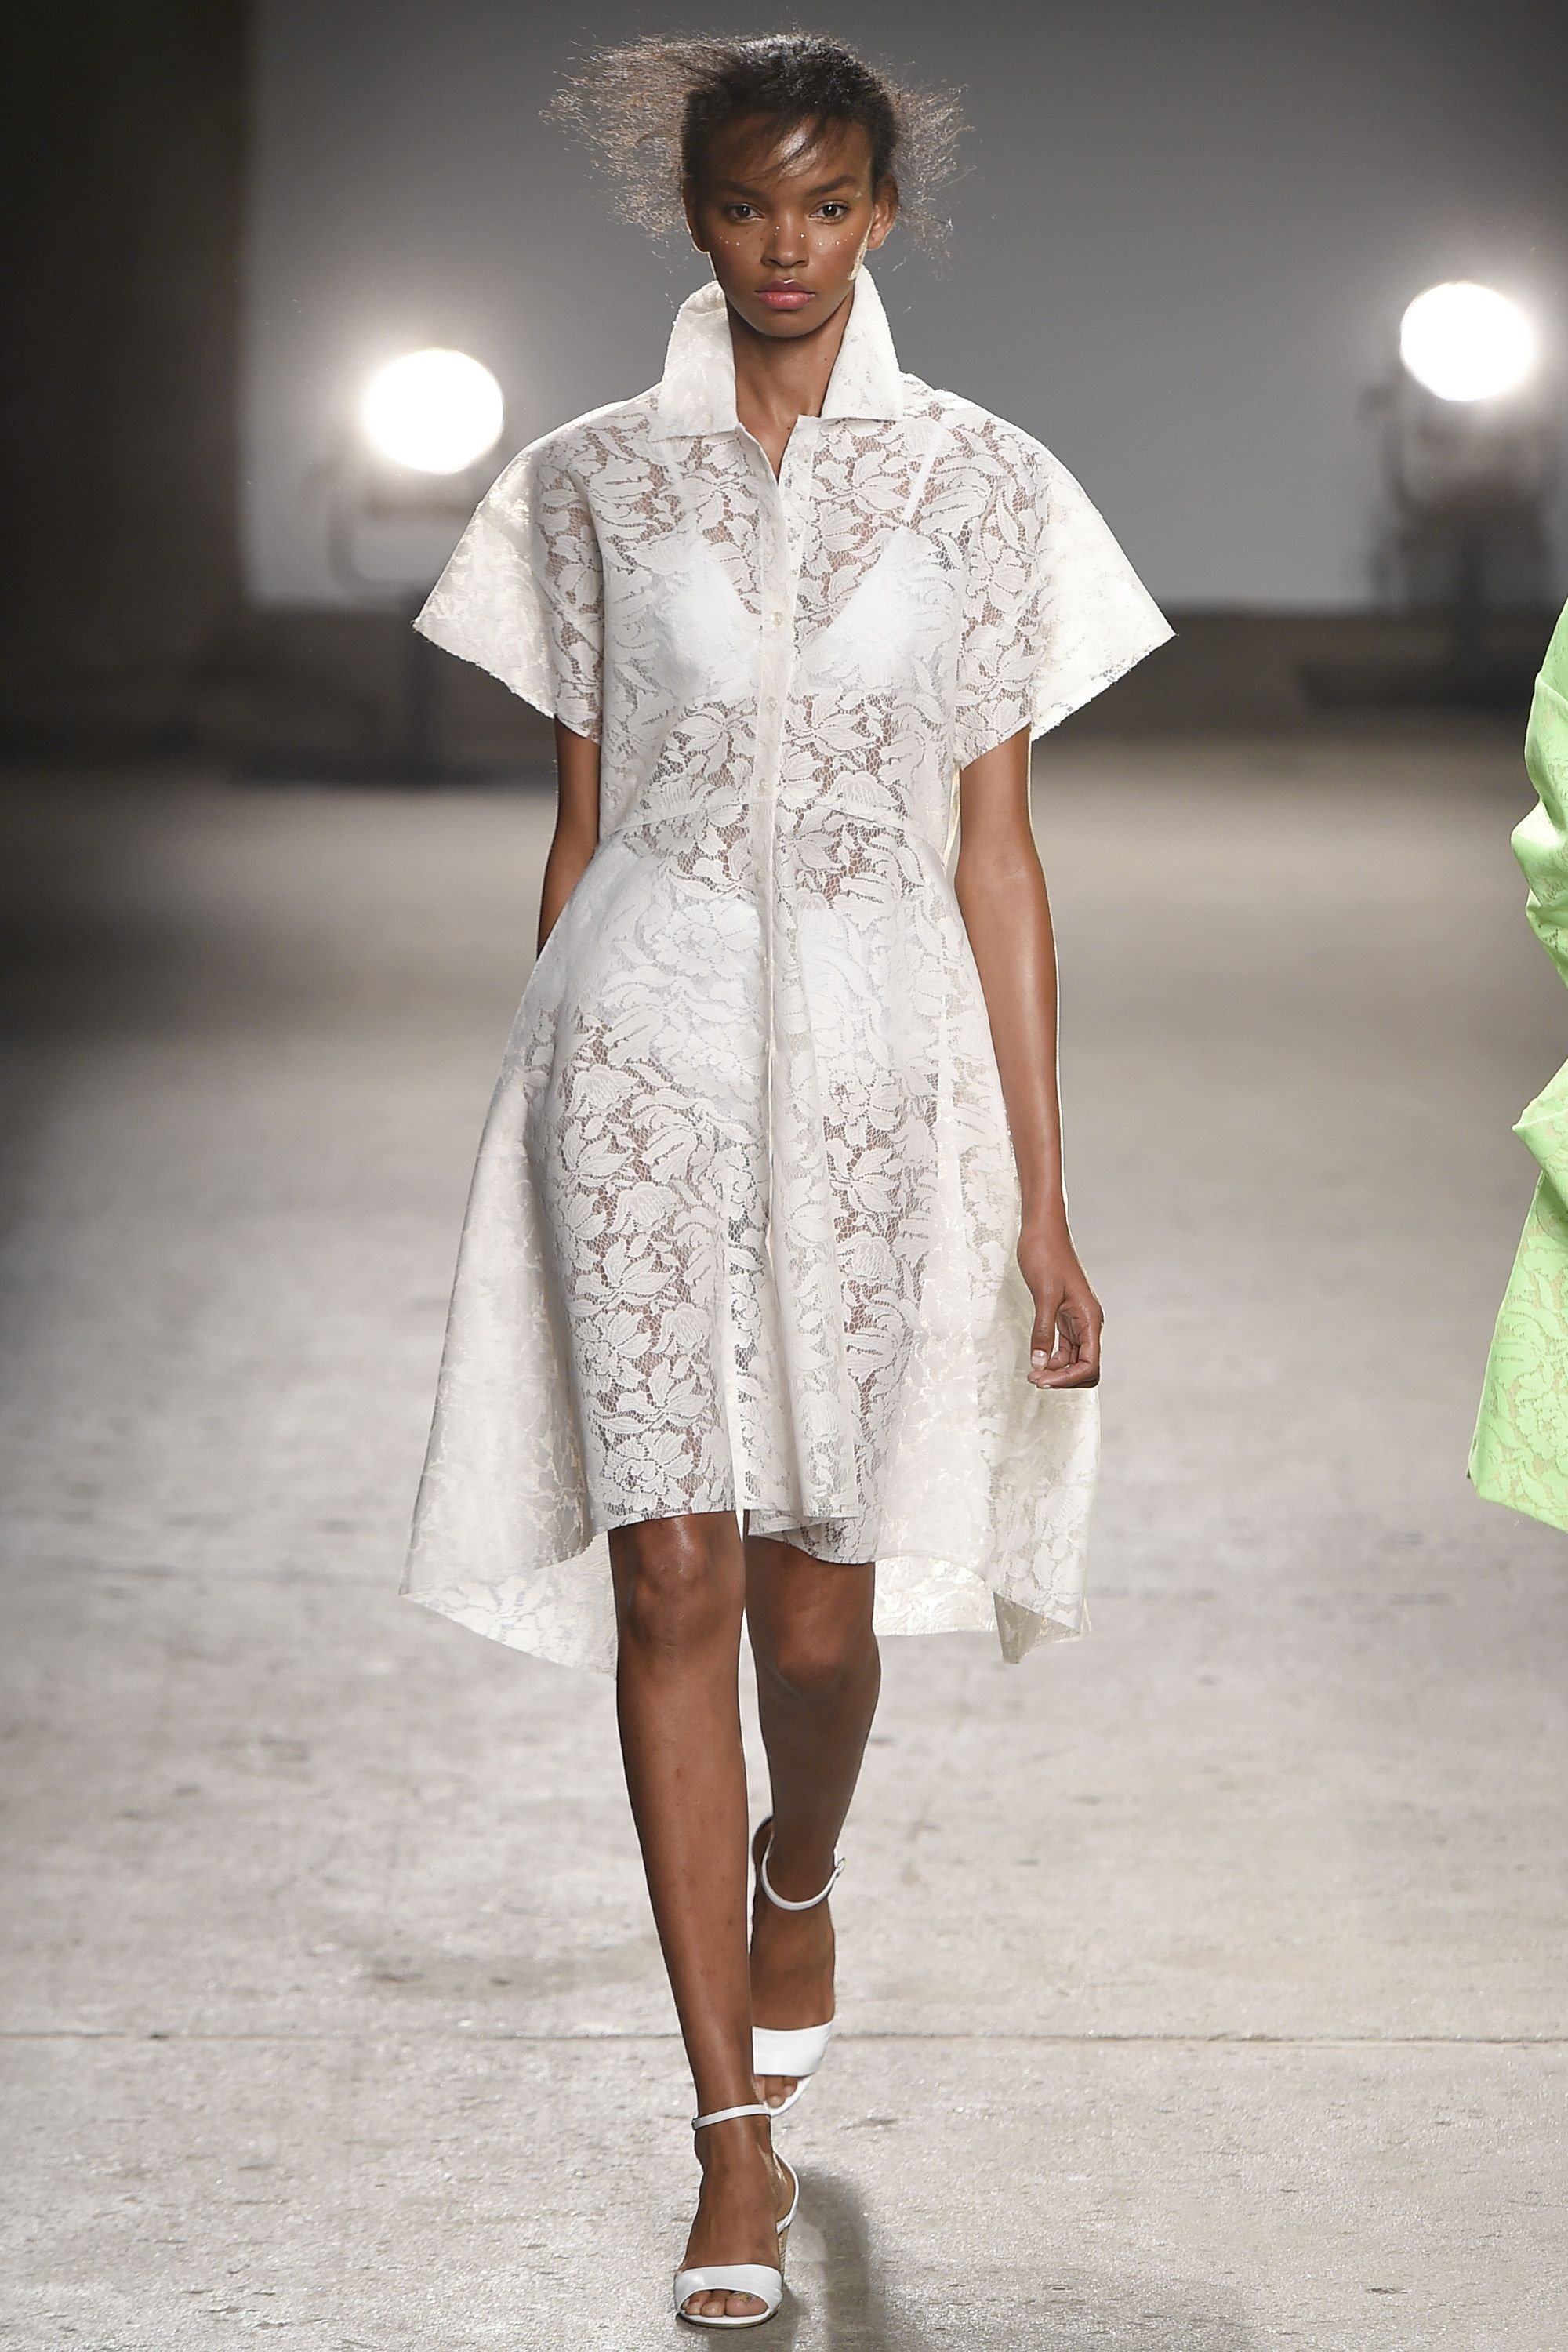 Fashion week Reese tracy spring runway for woman